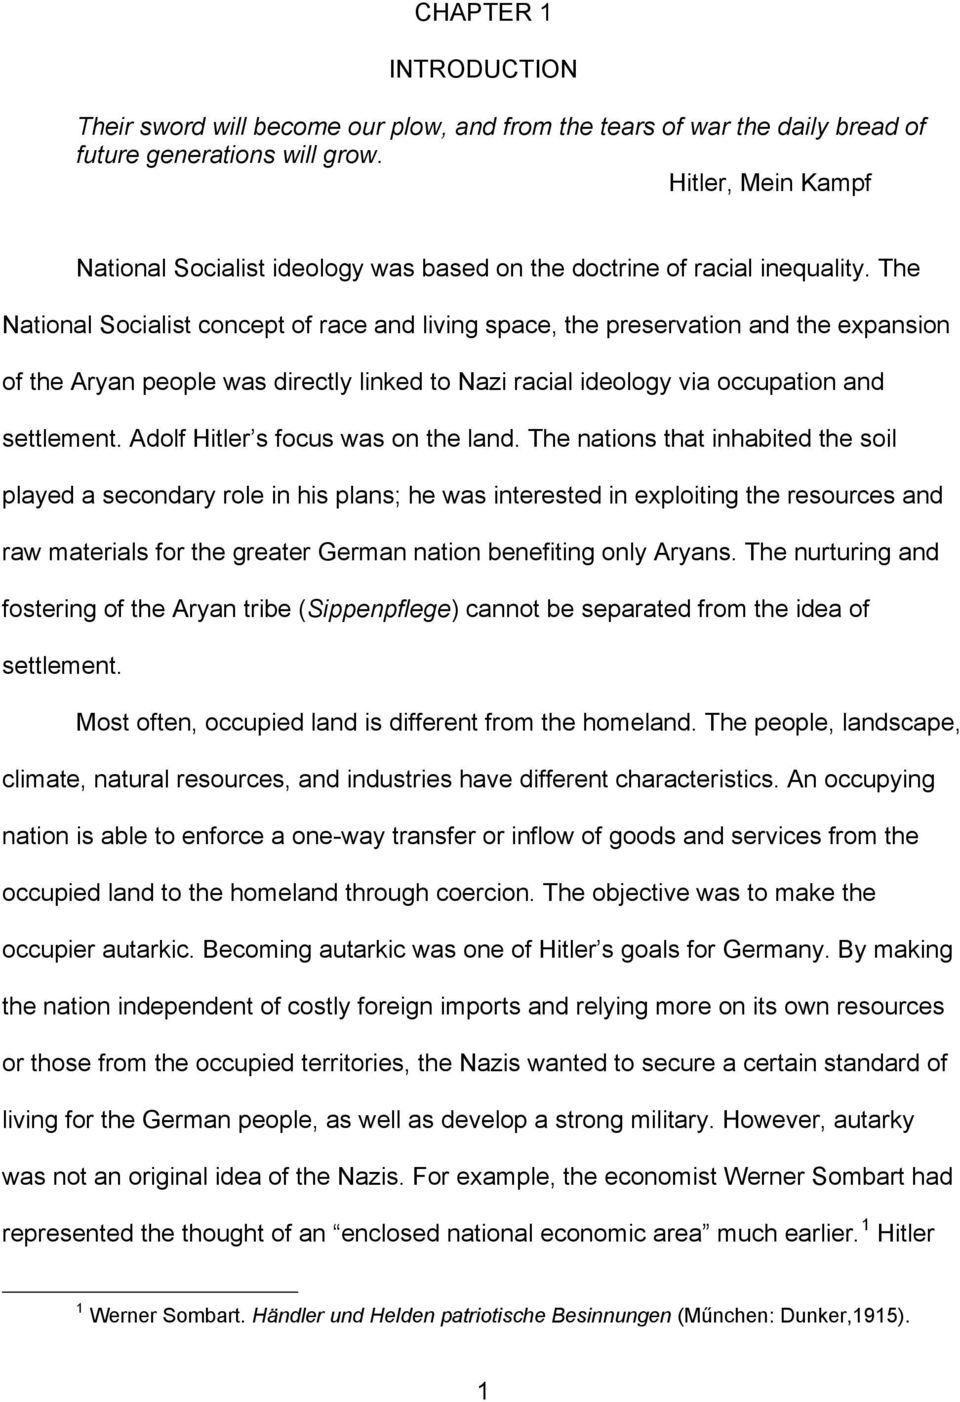 The National Socialist concept of race and living space, the preservation and the expansion of the Aryan people was directly linked to Nazi racial ideology via occupation and settlement.